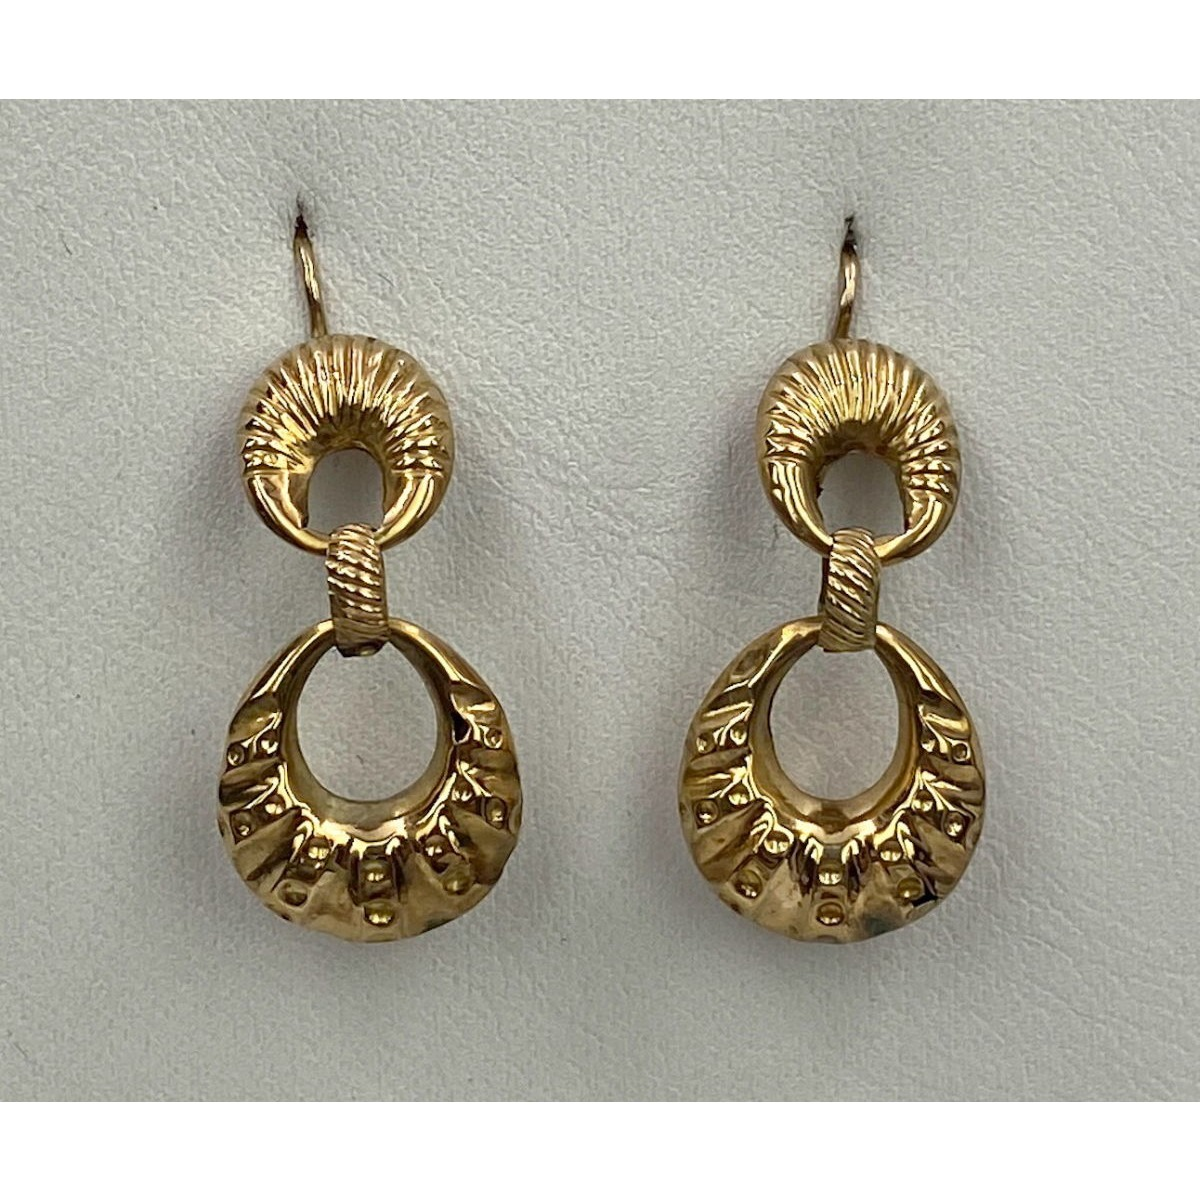 Figure-Eight 10kt Gold, Lovely Size and Awesome Presence Antique English Earrings